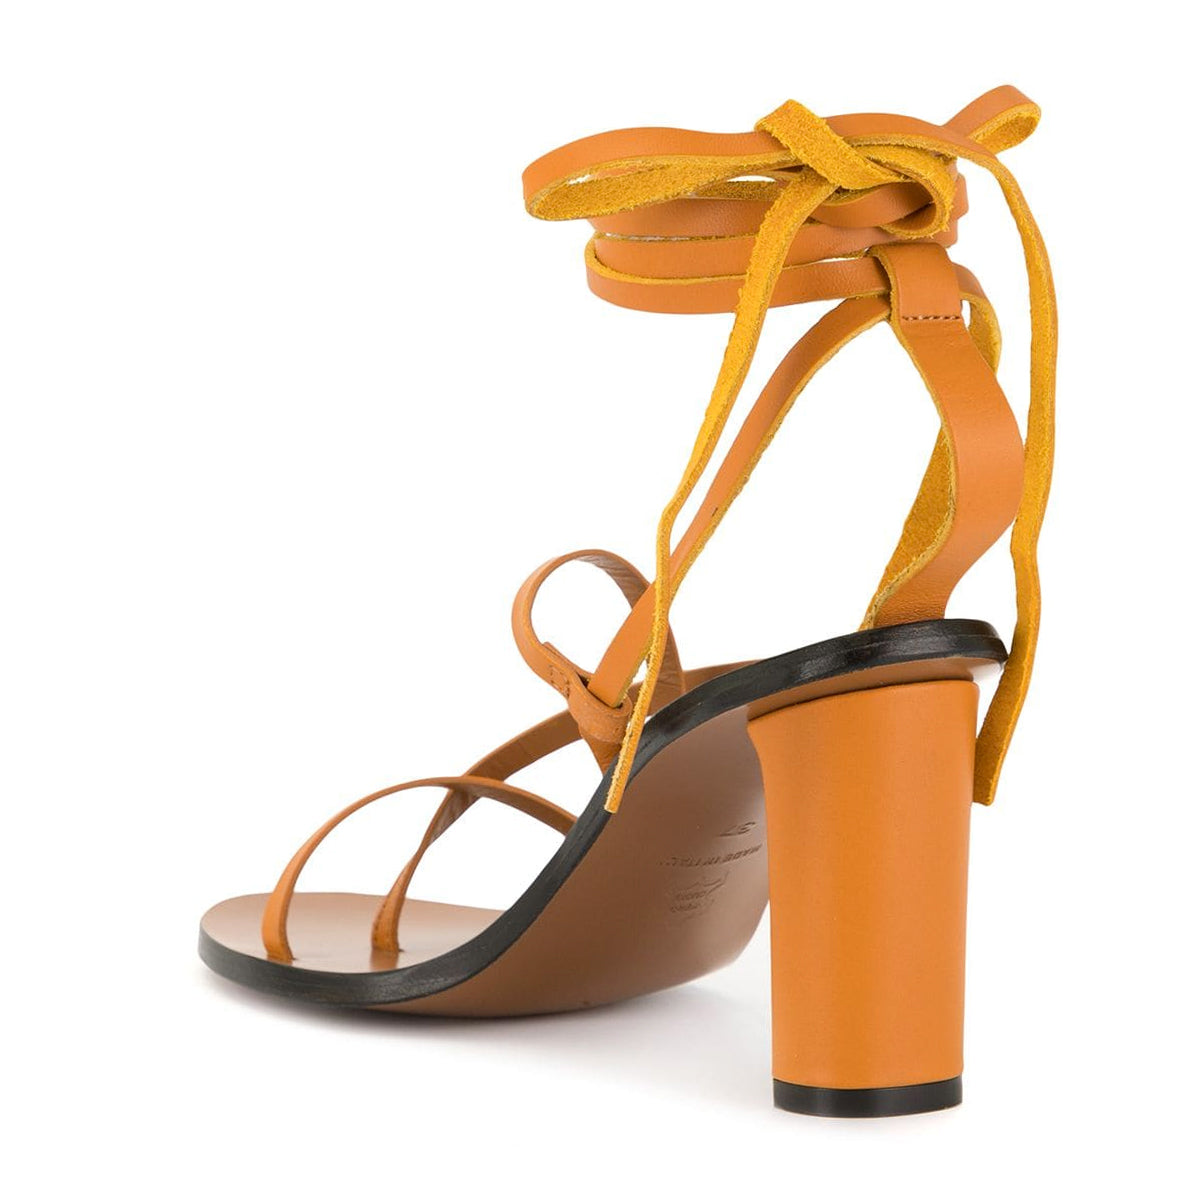 Adelfia Tie Up Strappy High Heel Sandals